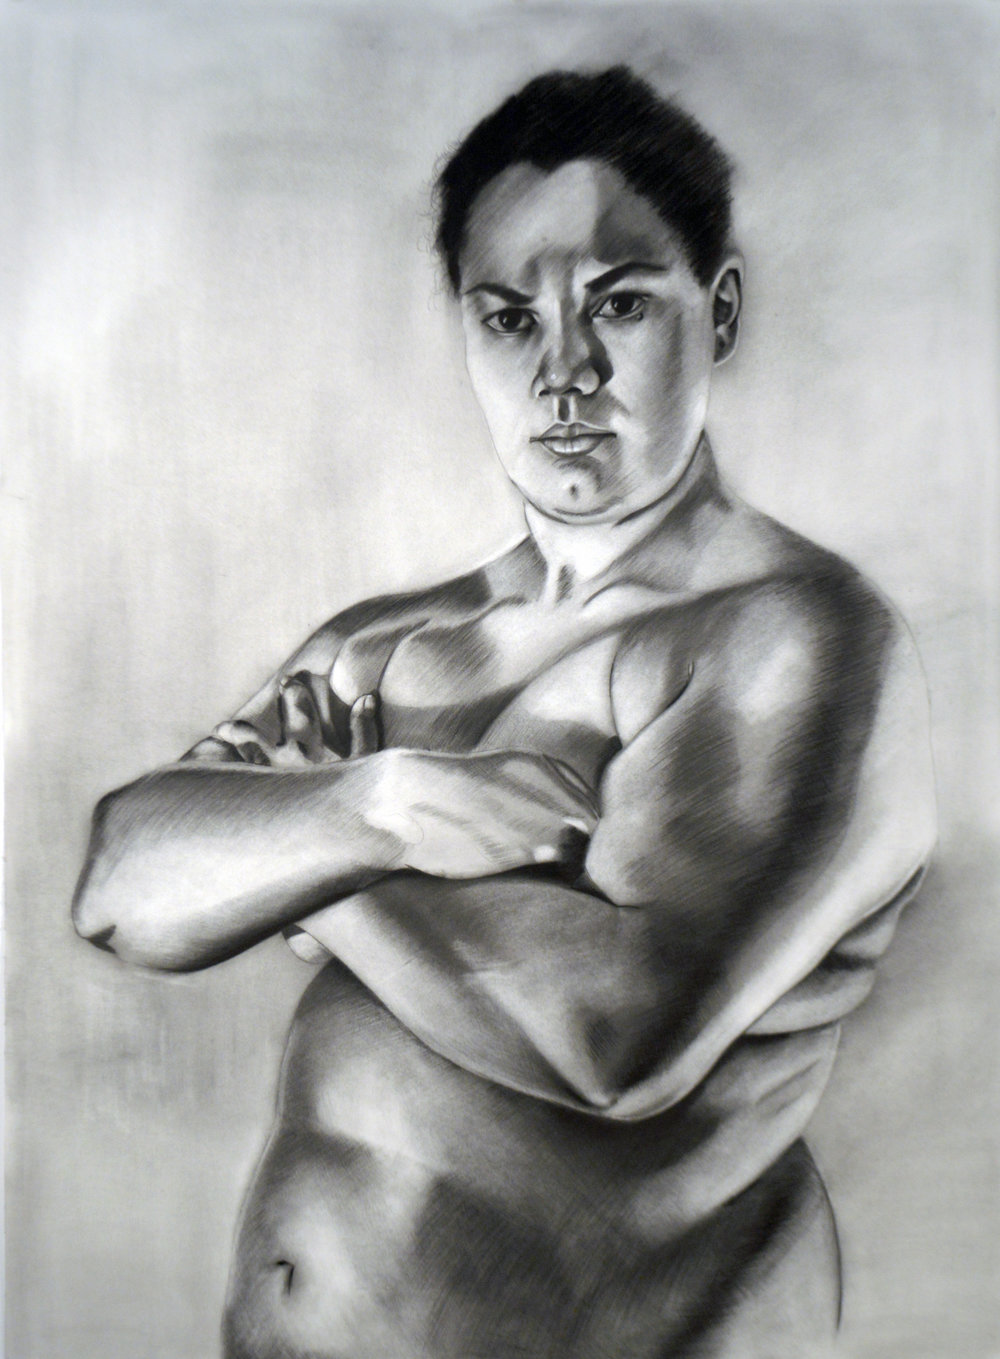 Bitch, 50.5 x 37 inches, Charcoal on paper.